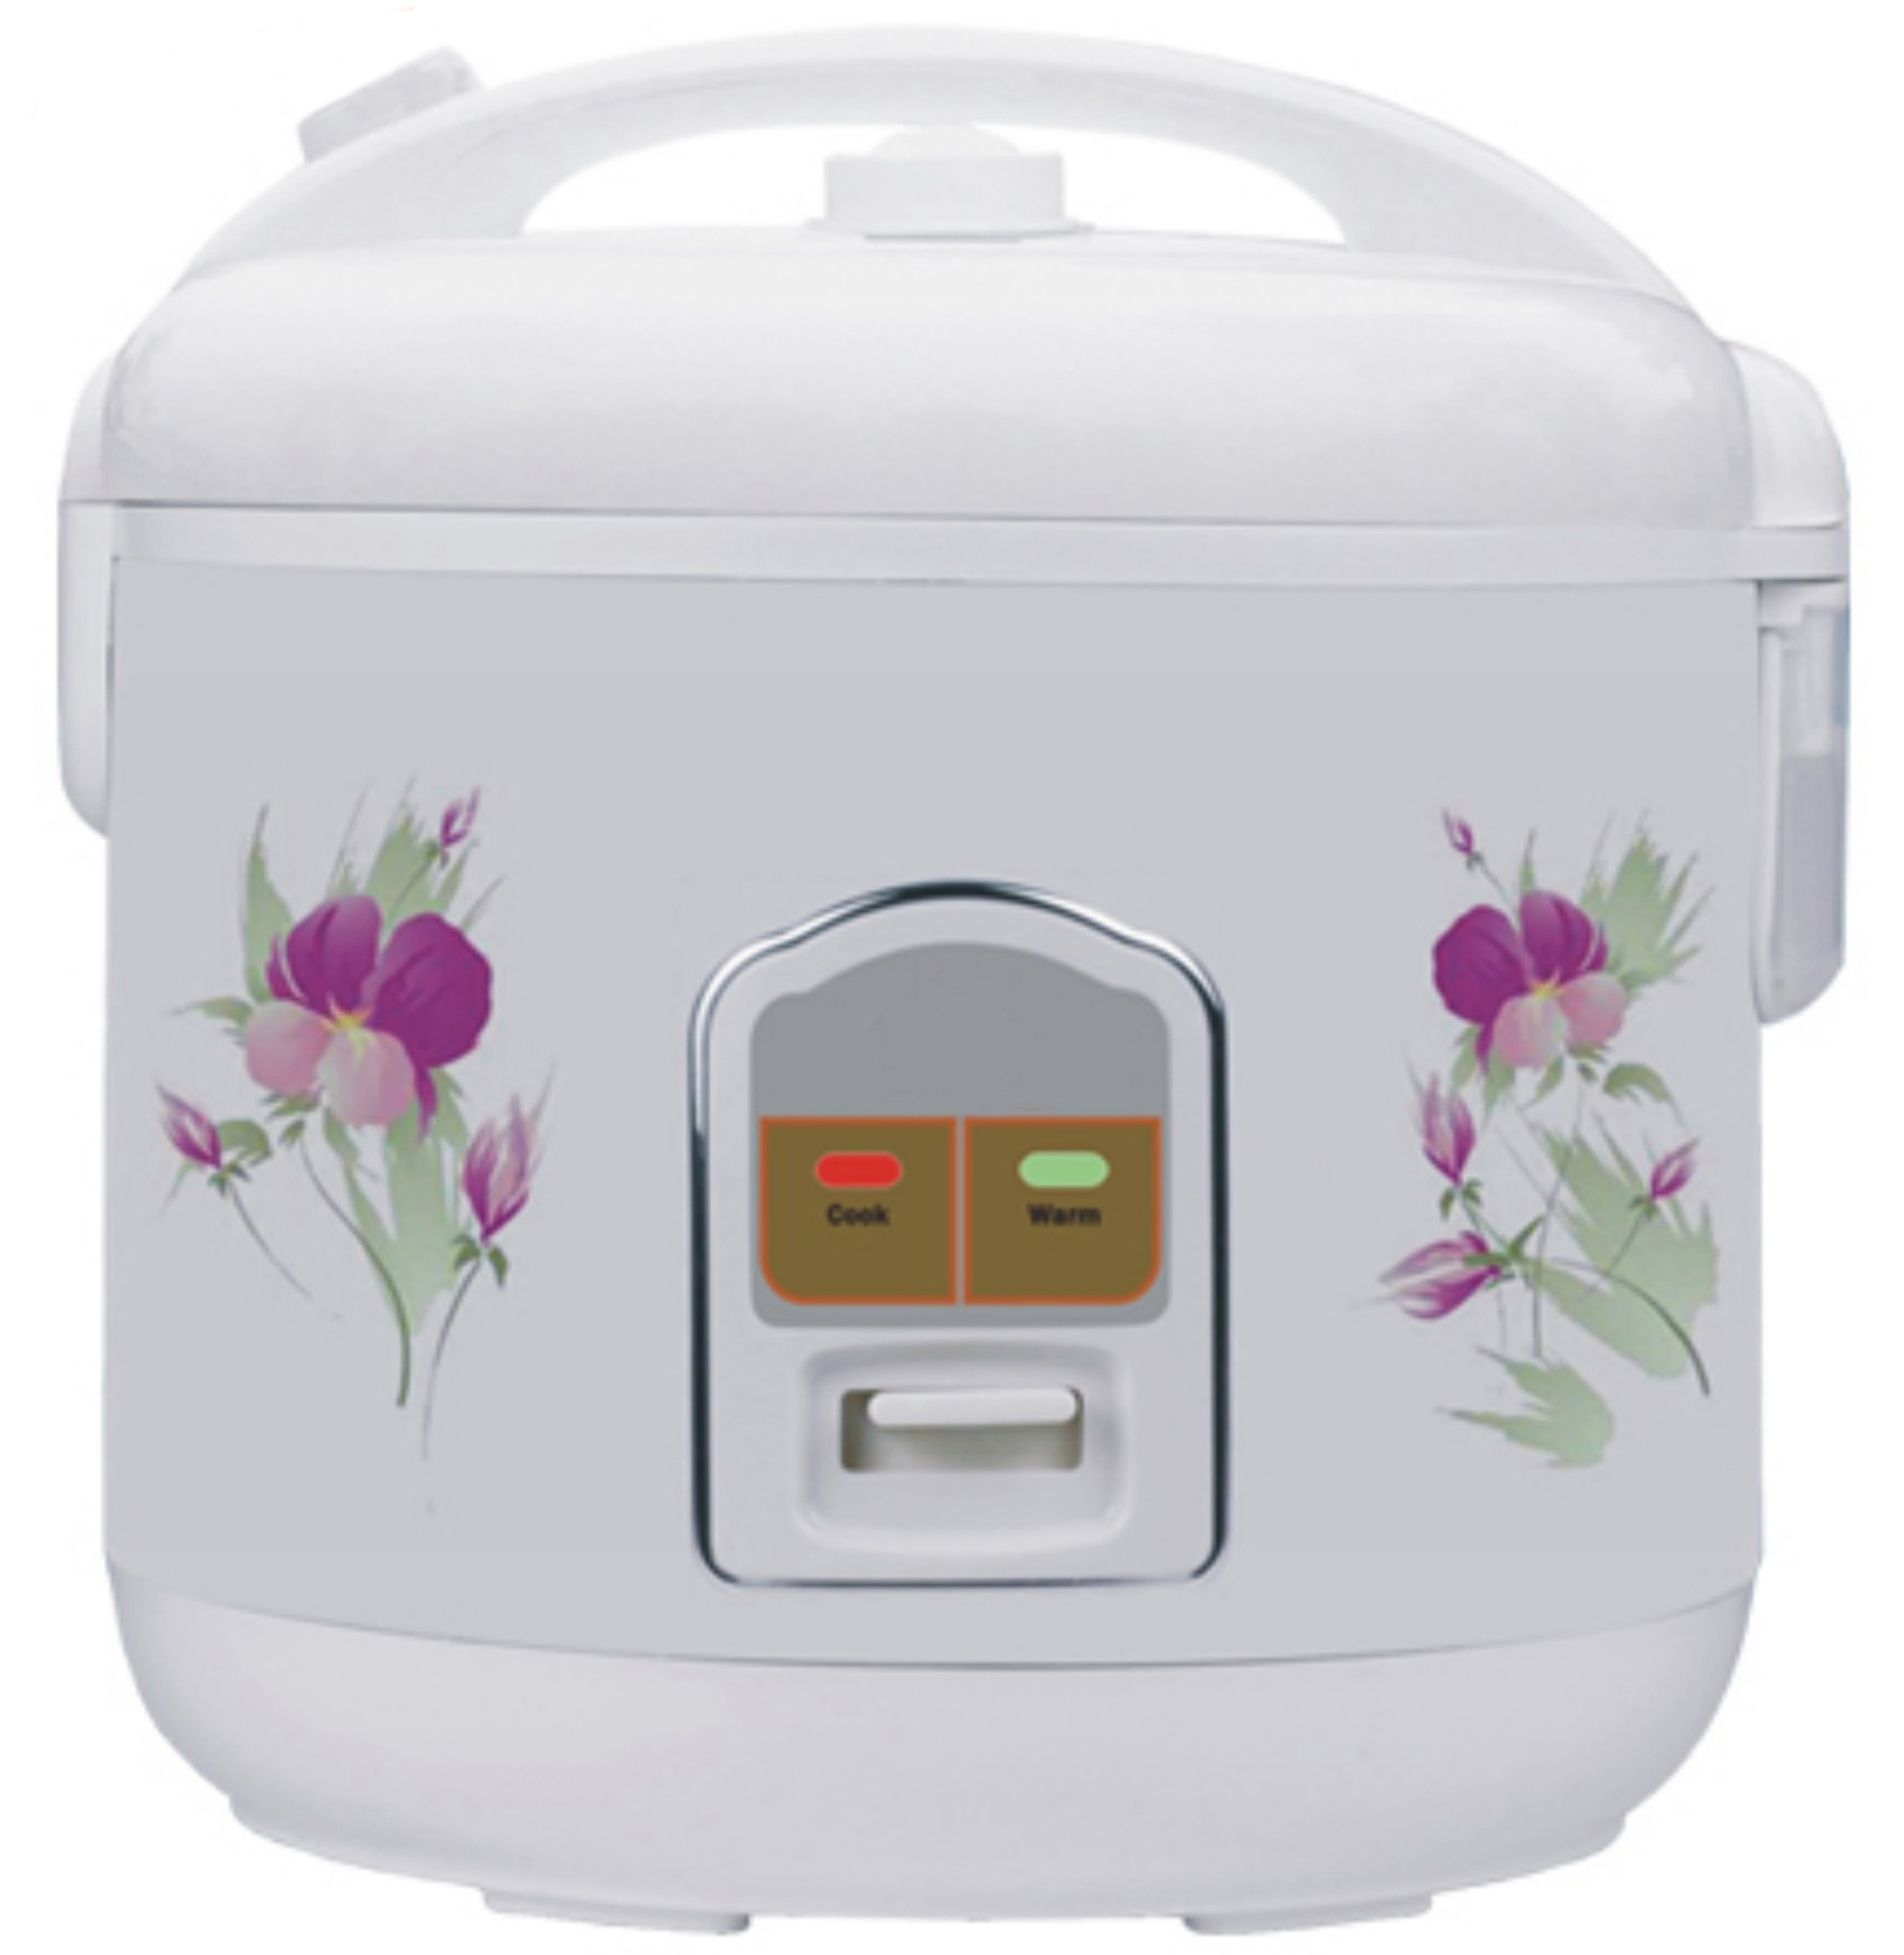 Deluxe Rice Cooker TPXB60-1